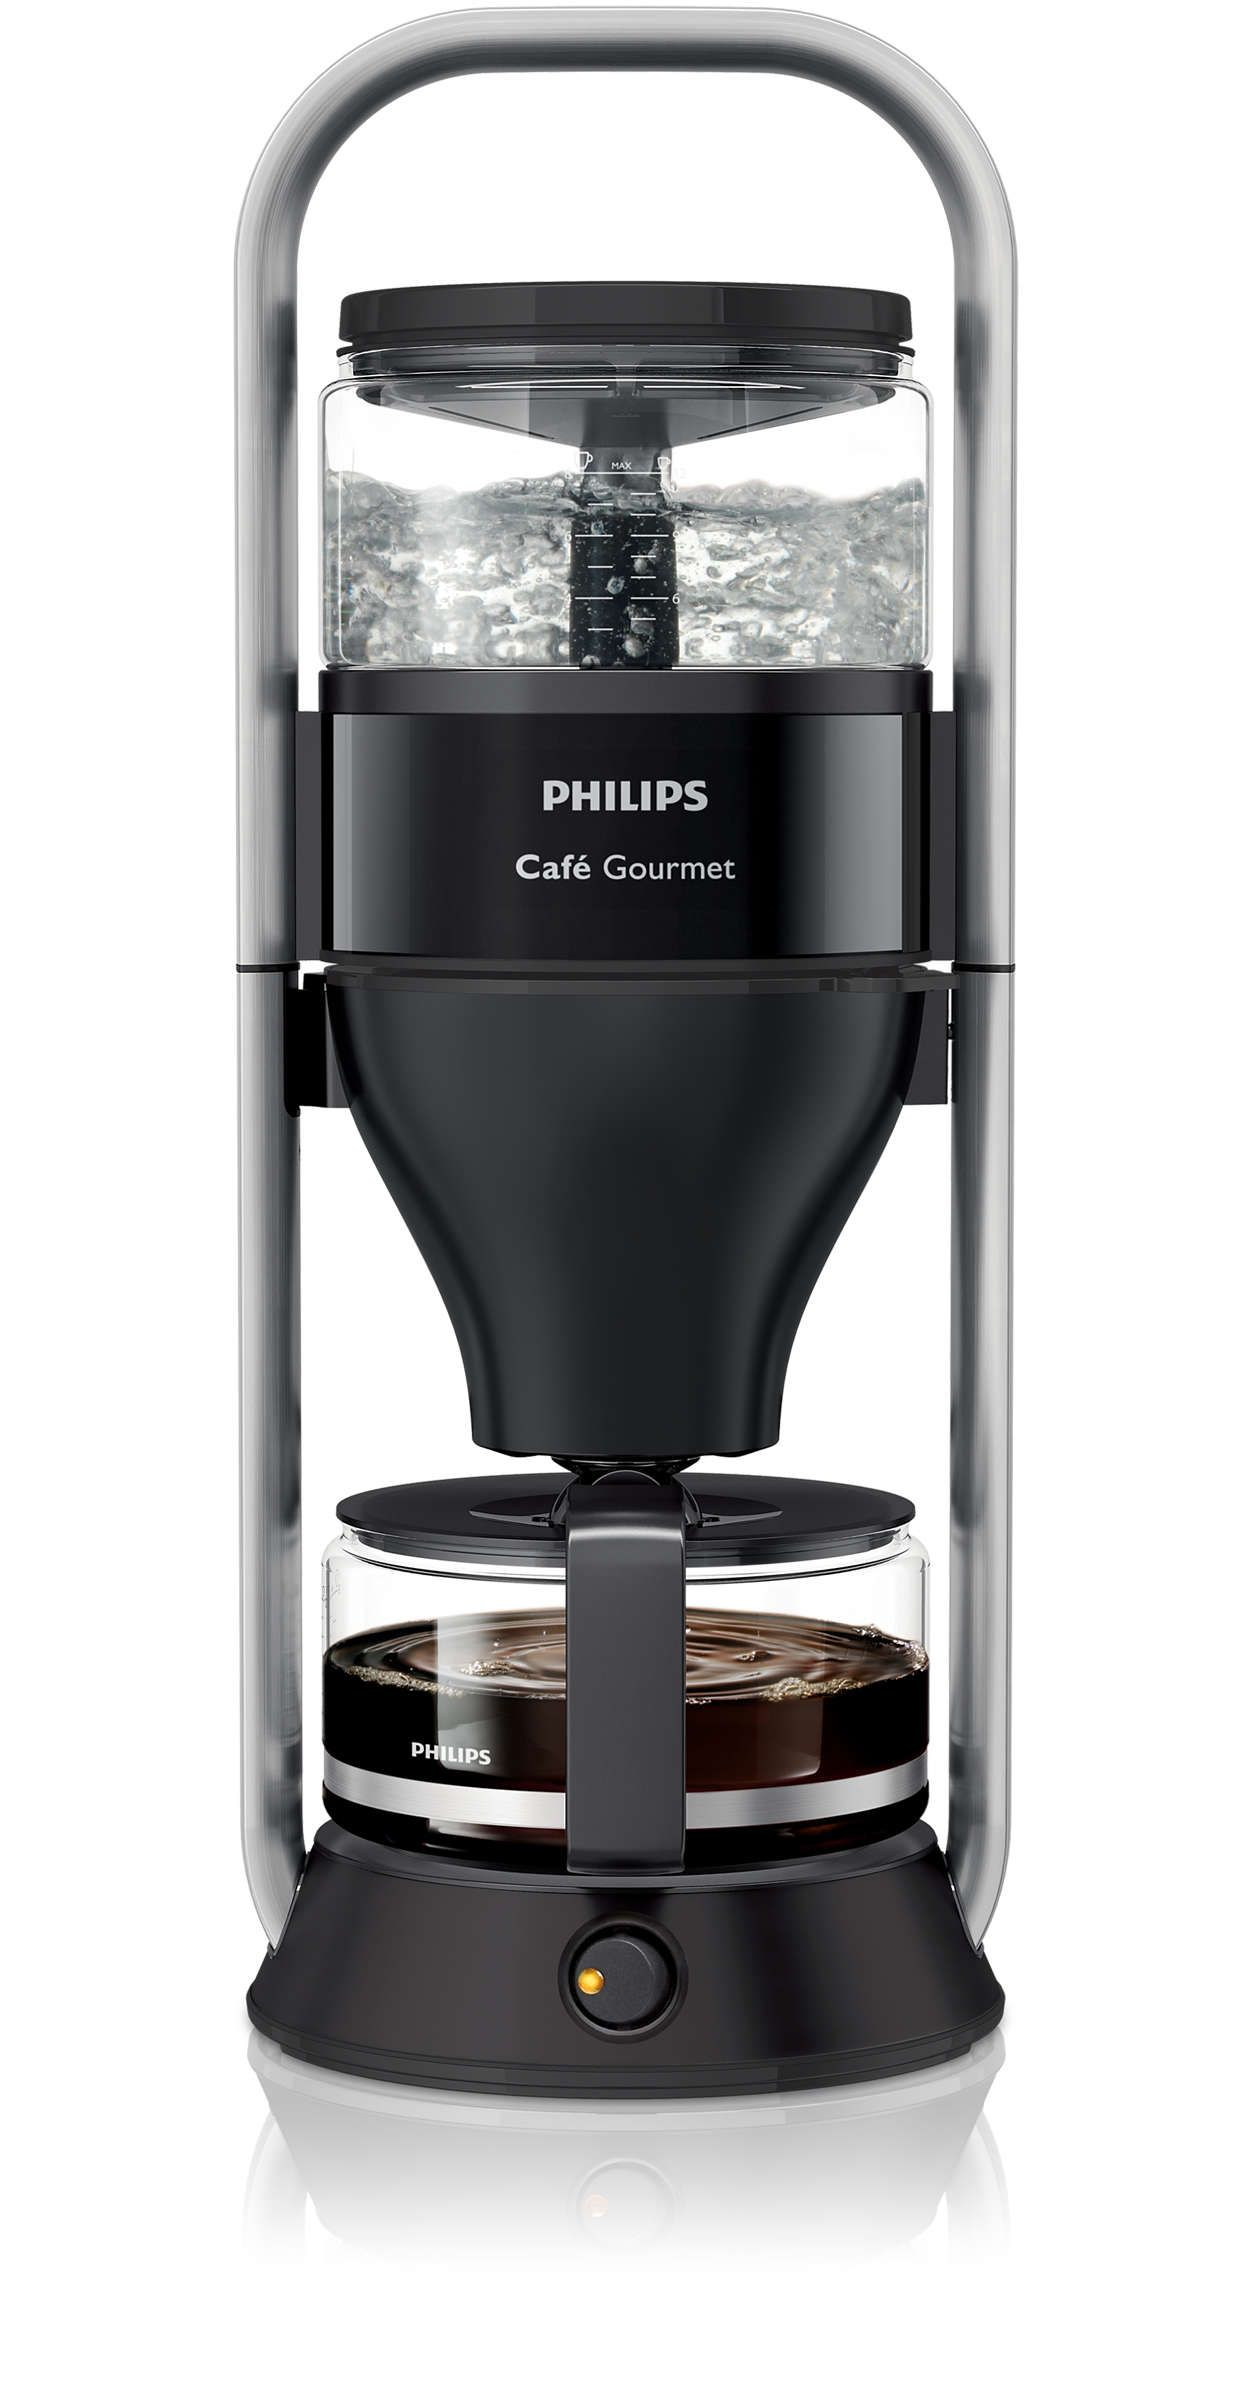 Philips Café Gourmet Cafetière HD5407/60 Coffee machine